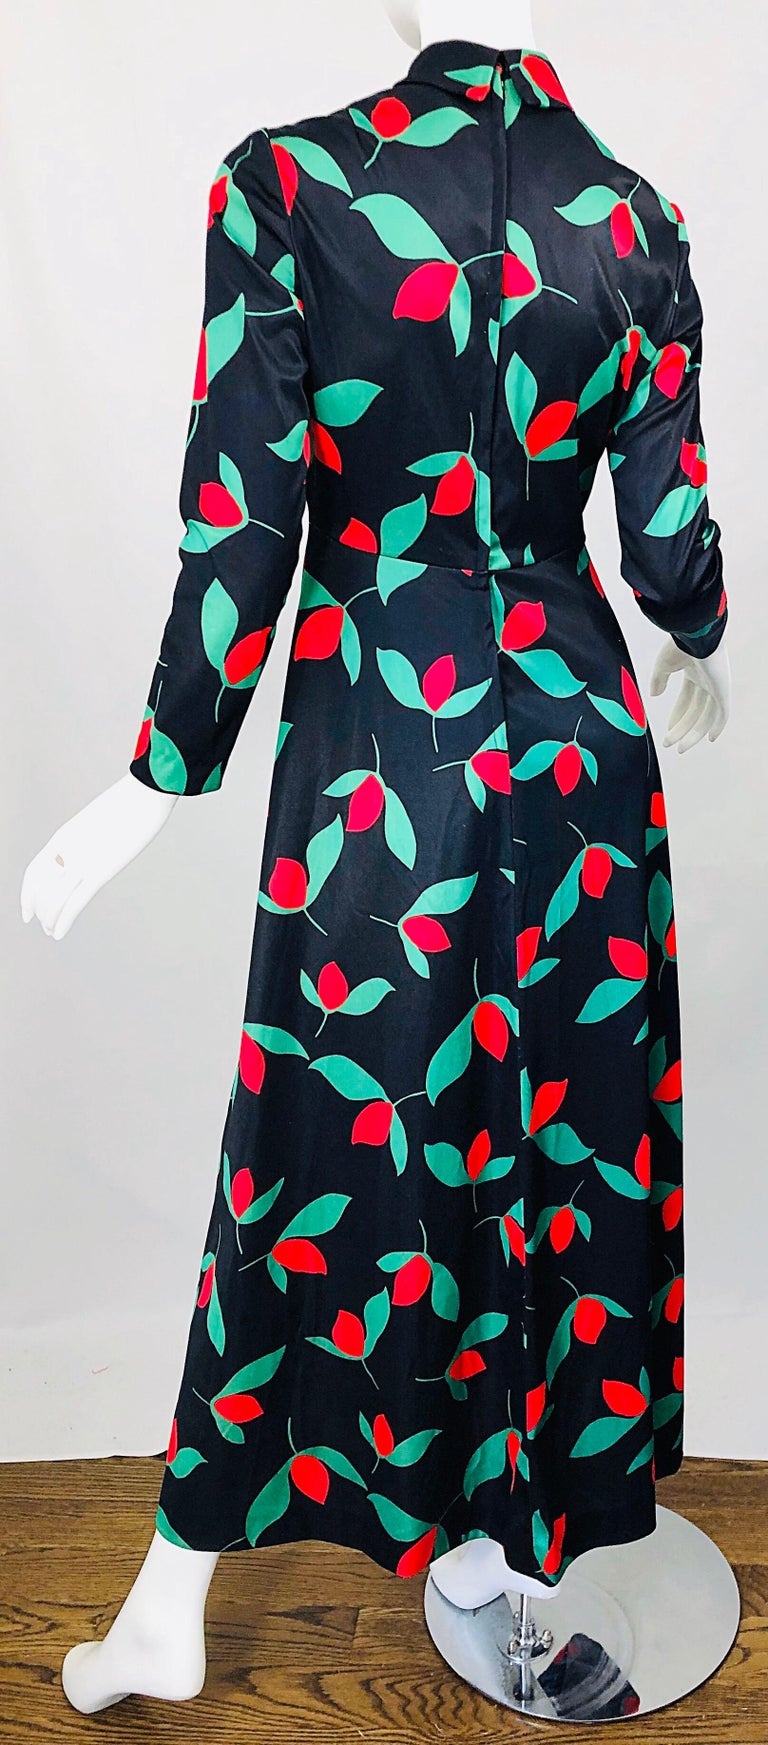 1970s Emilio Borghese Tulip Print Black + Green + Red Vintage 70s Maxi Dress For Sale 3